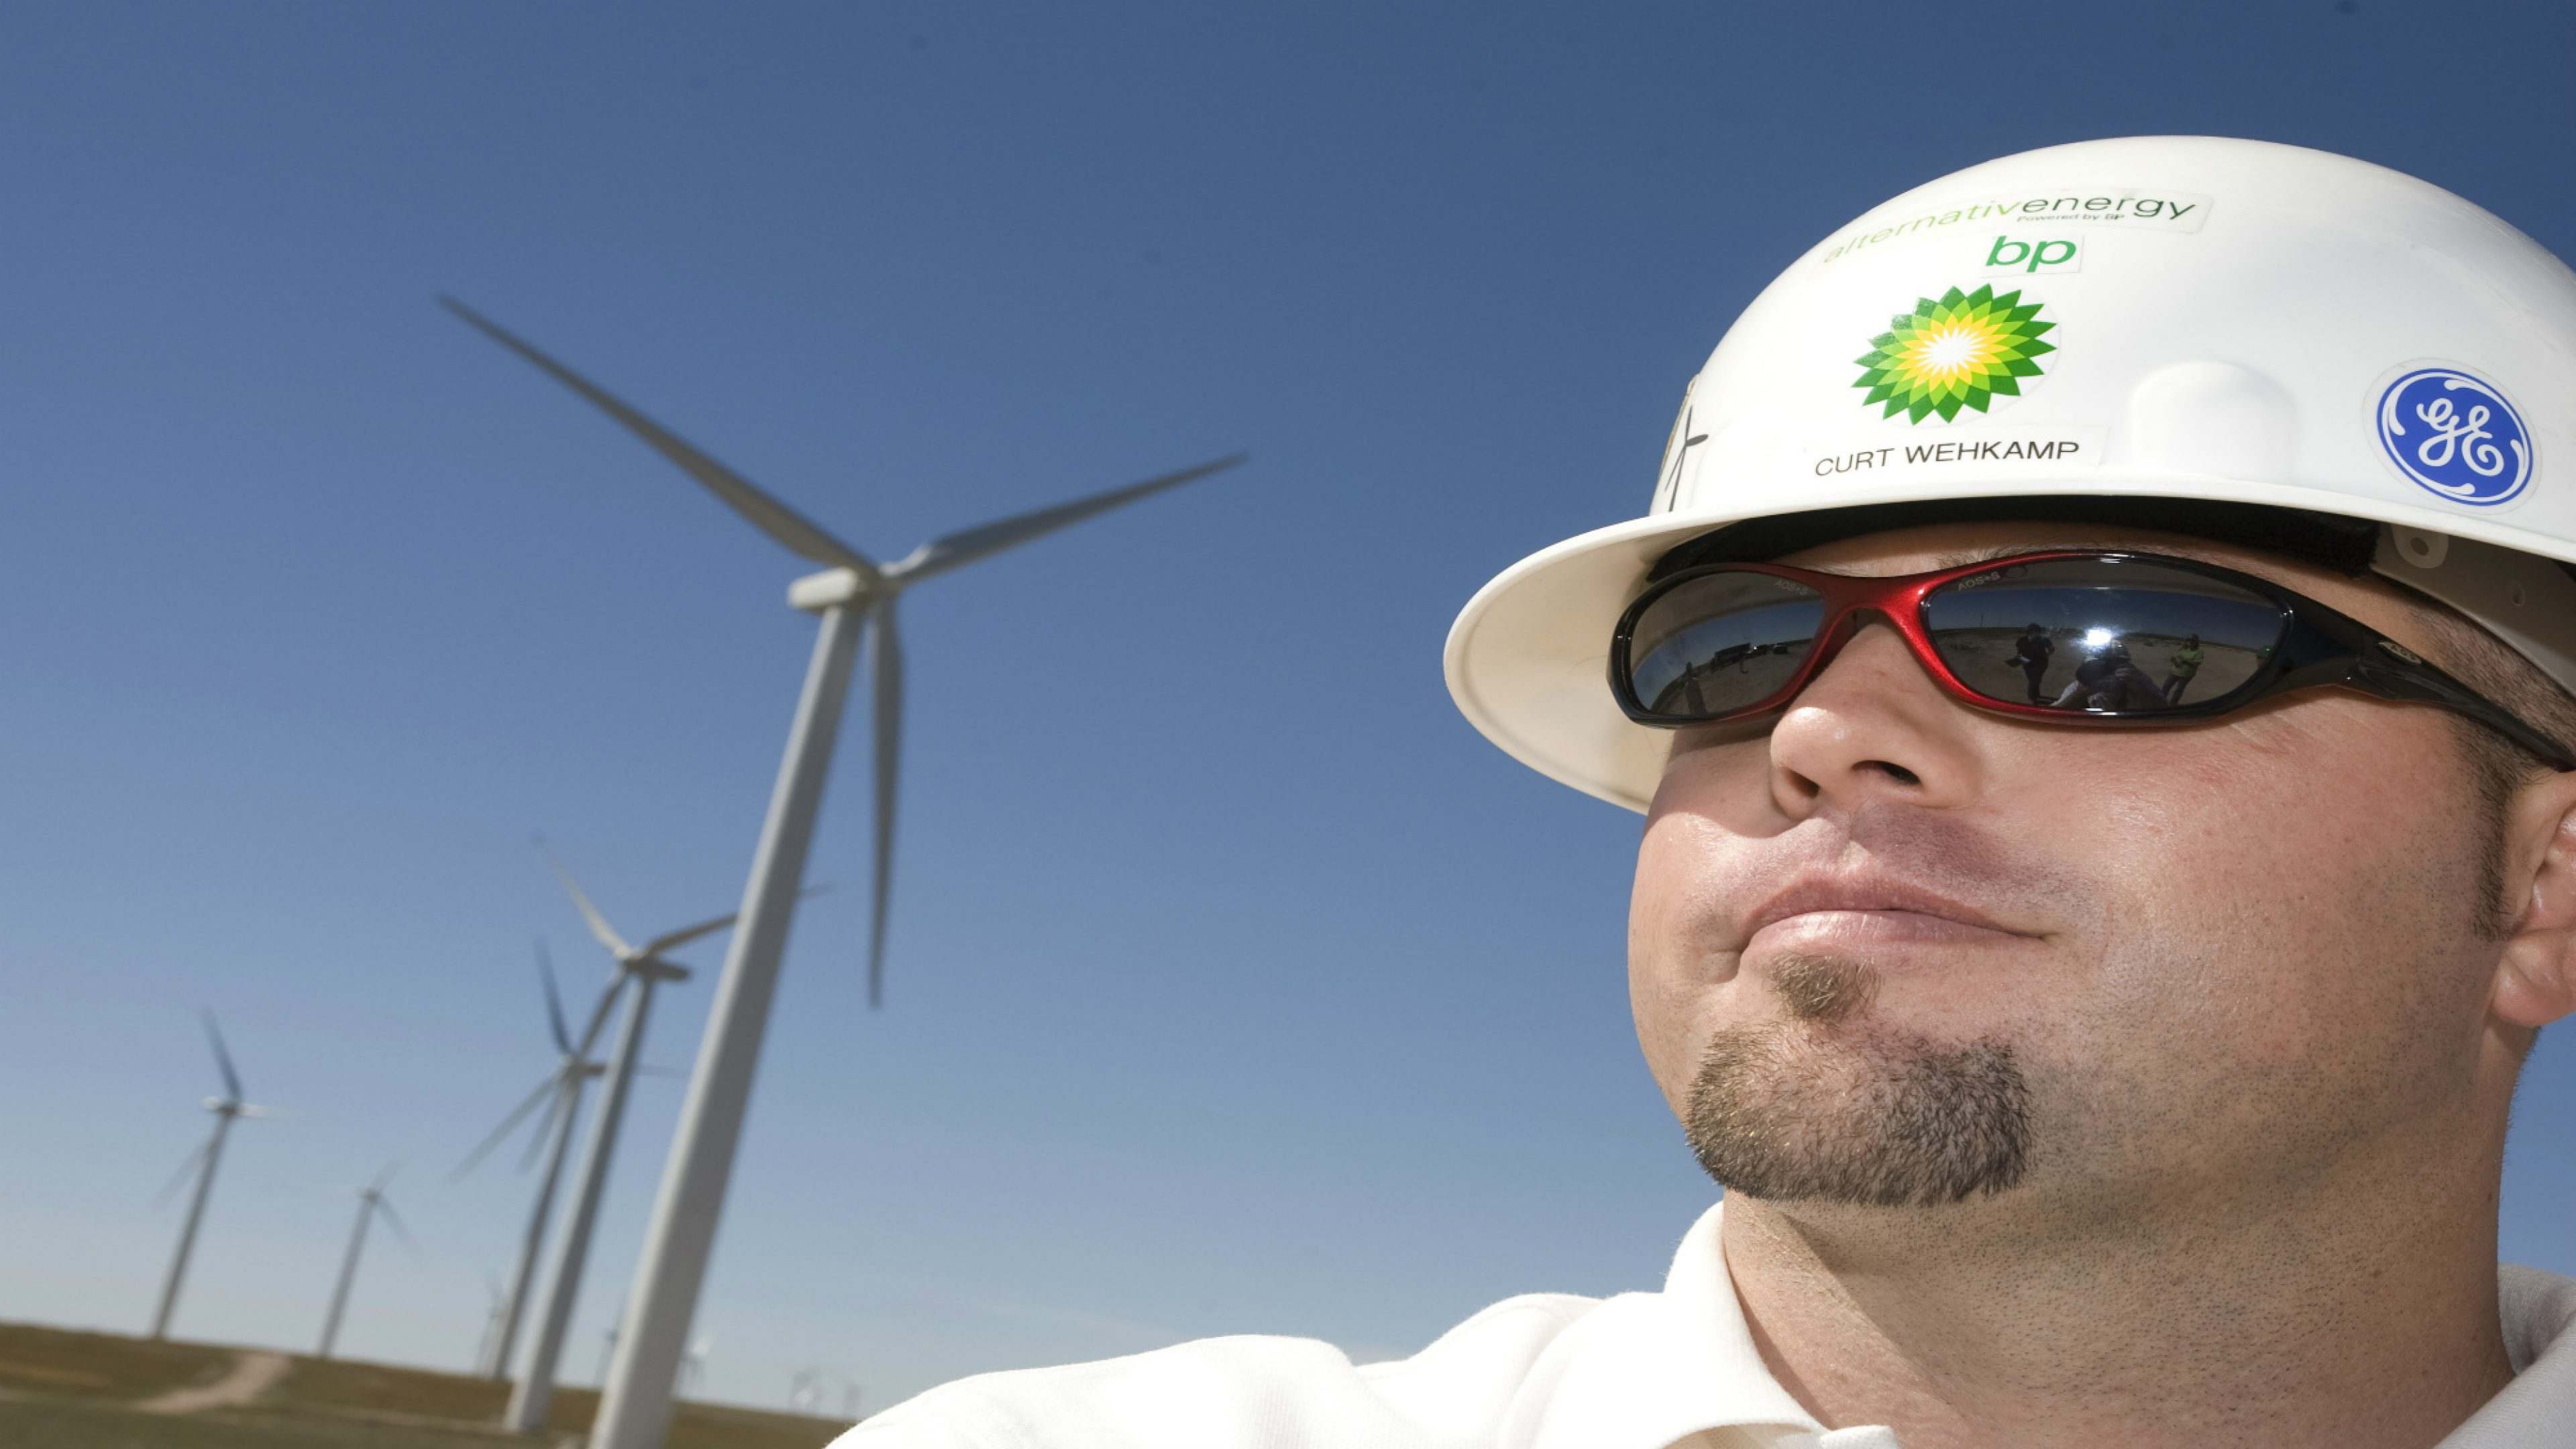 Employee and wind turbines